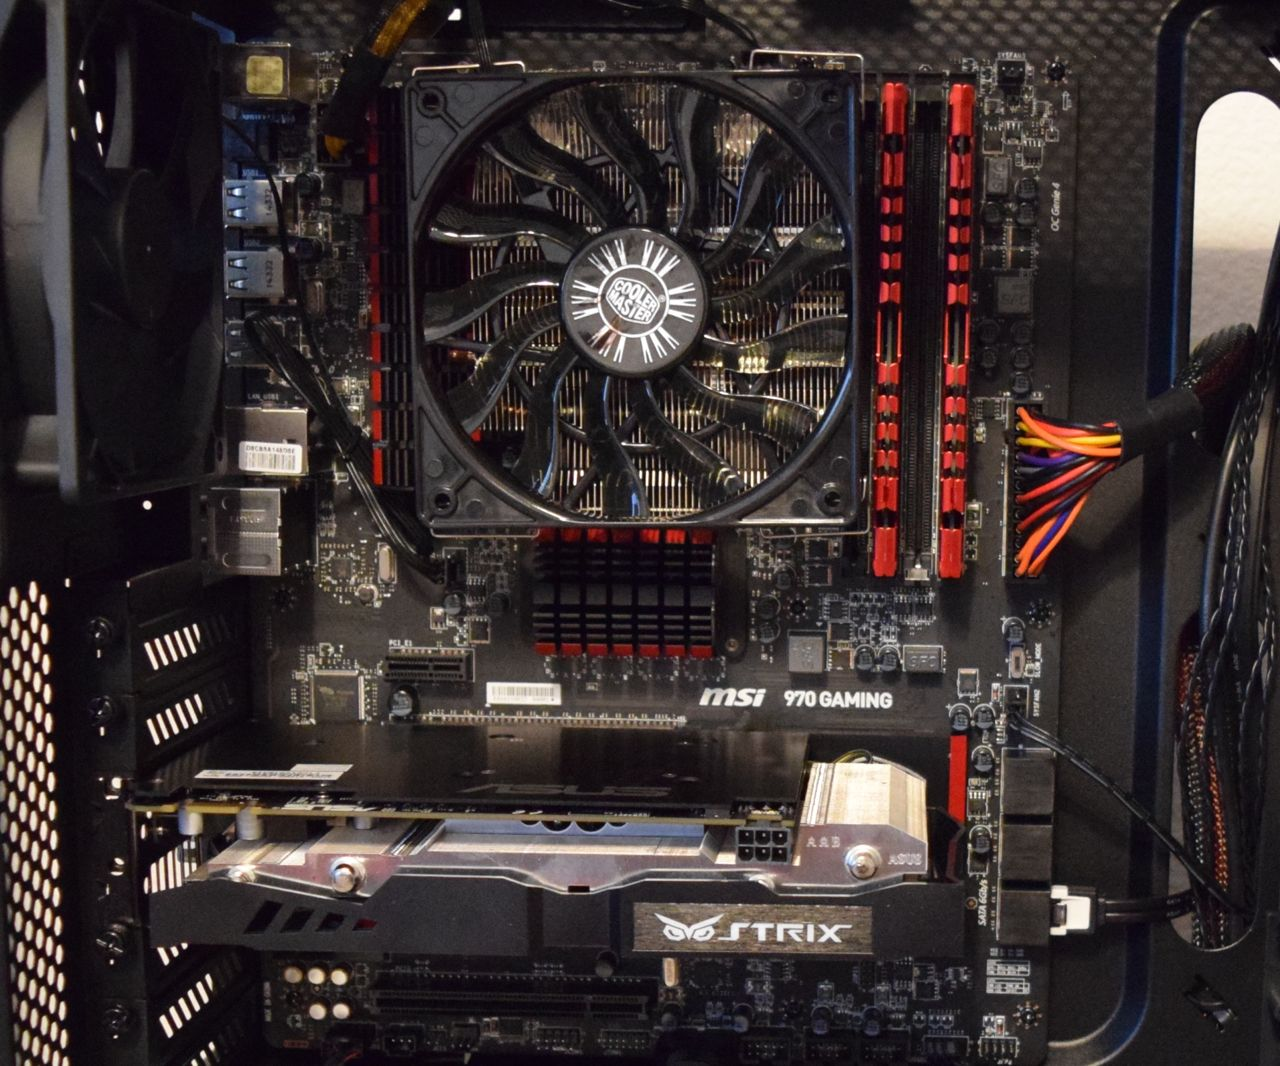 Build A High Quality 1080p/60fps Gaming PC For 750